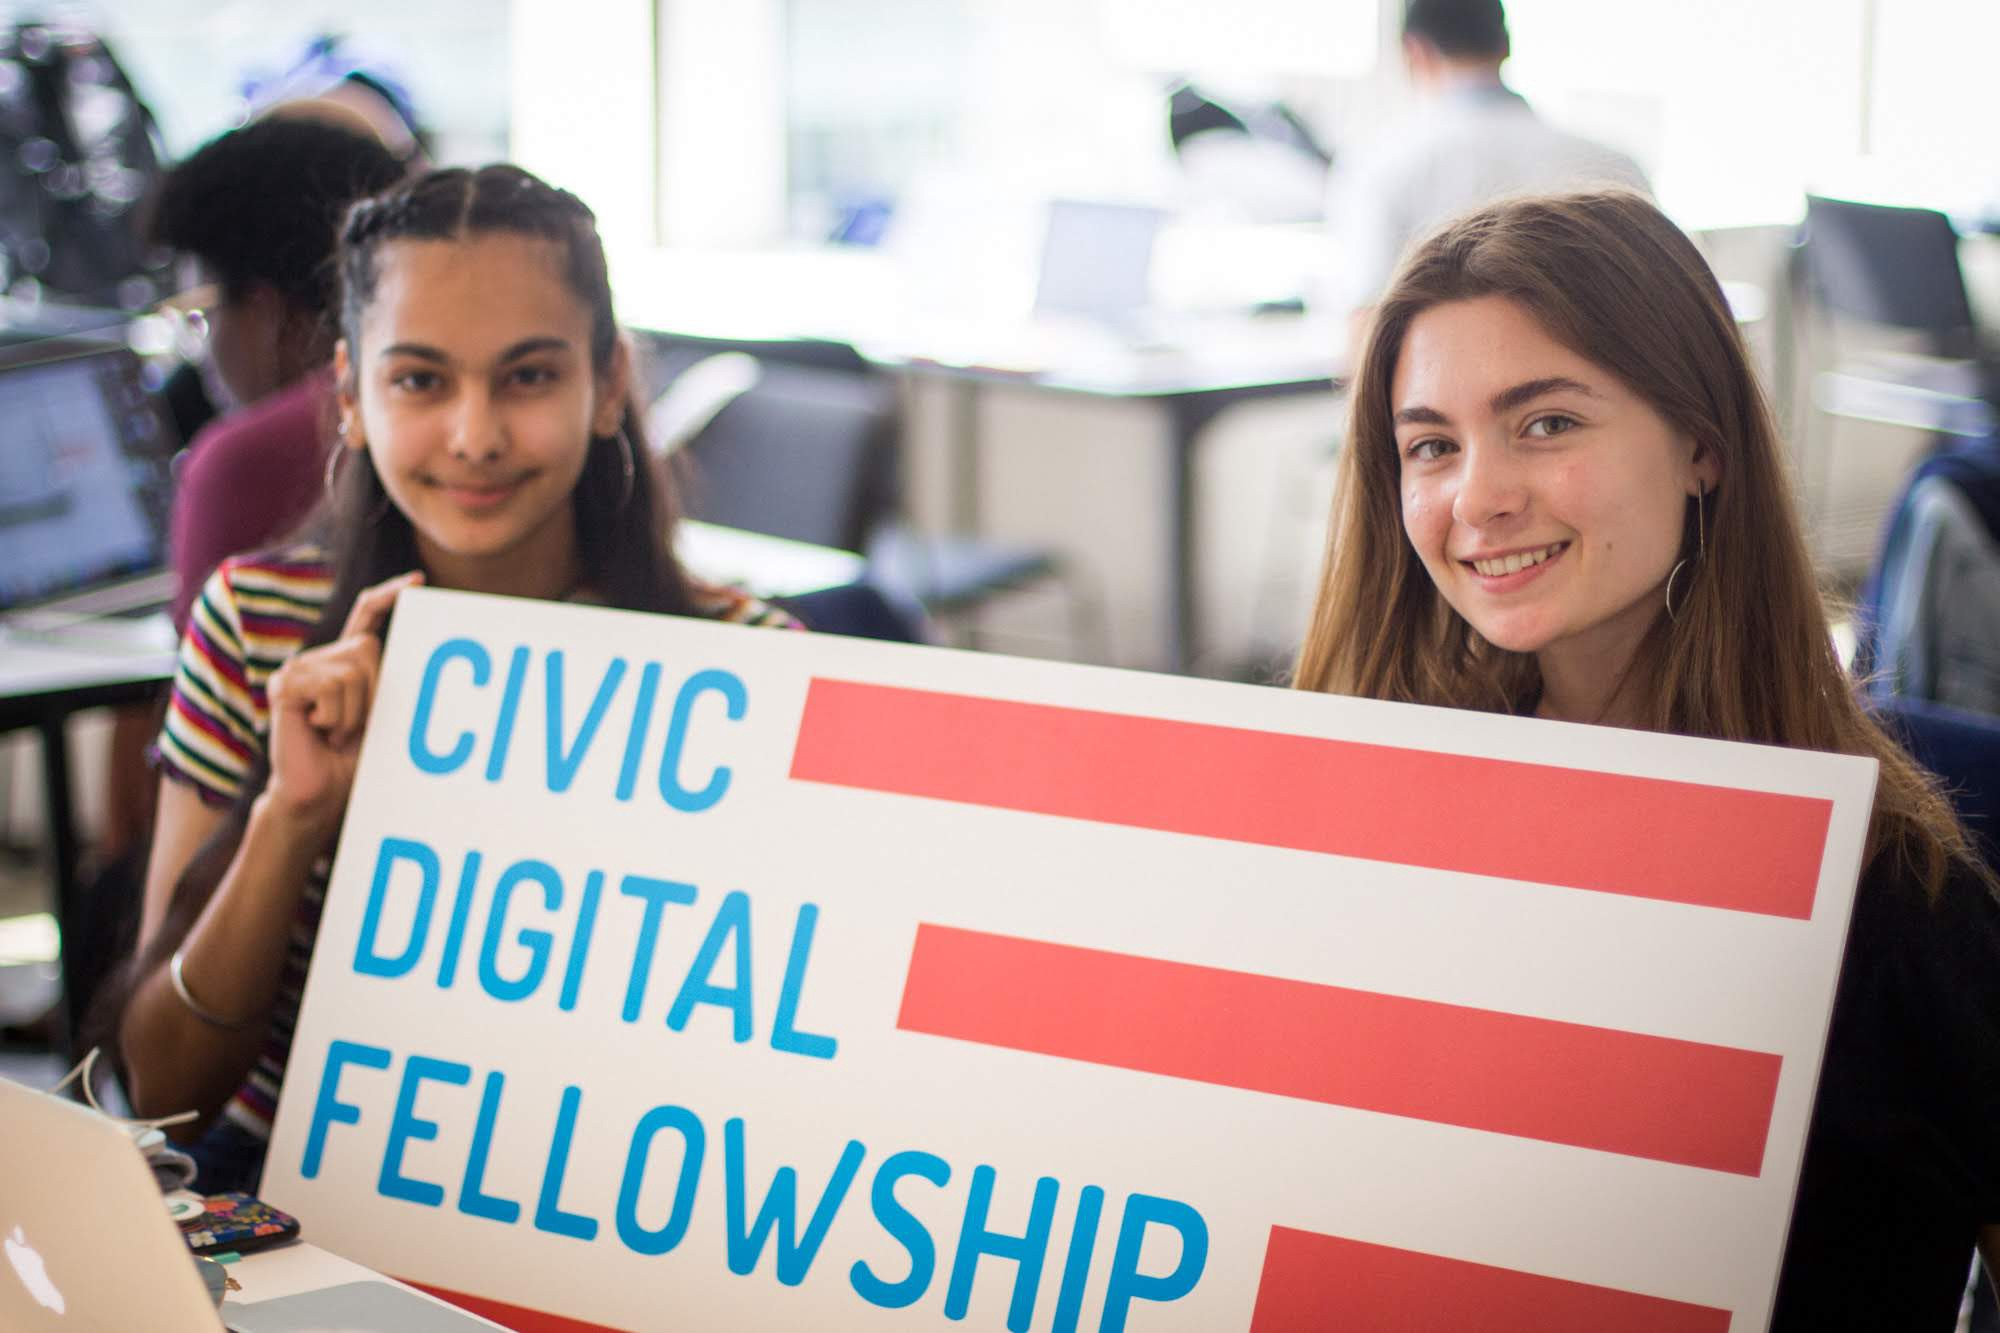 Introducing the 2019 Civic Digital Fellowship, and